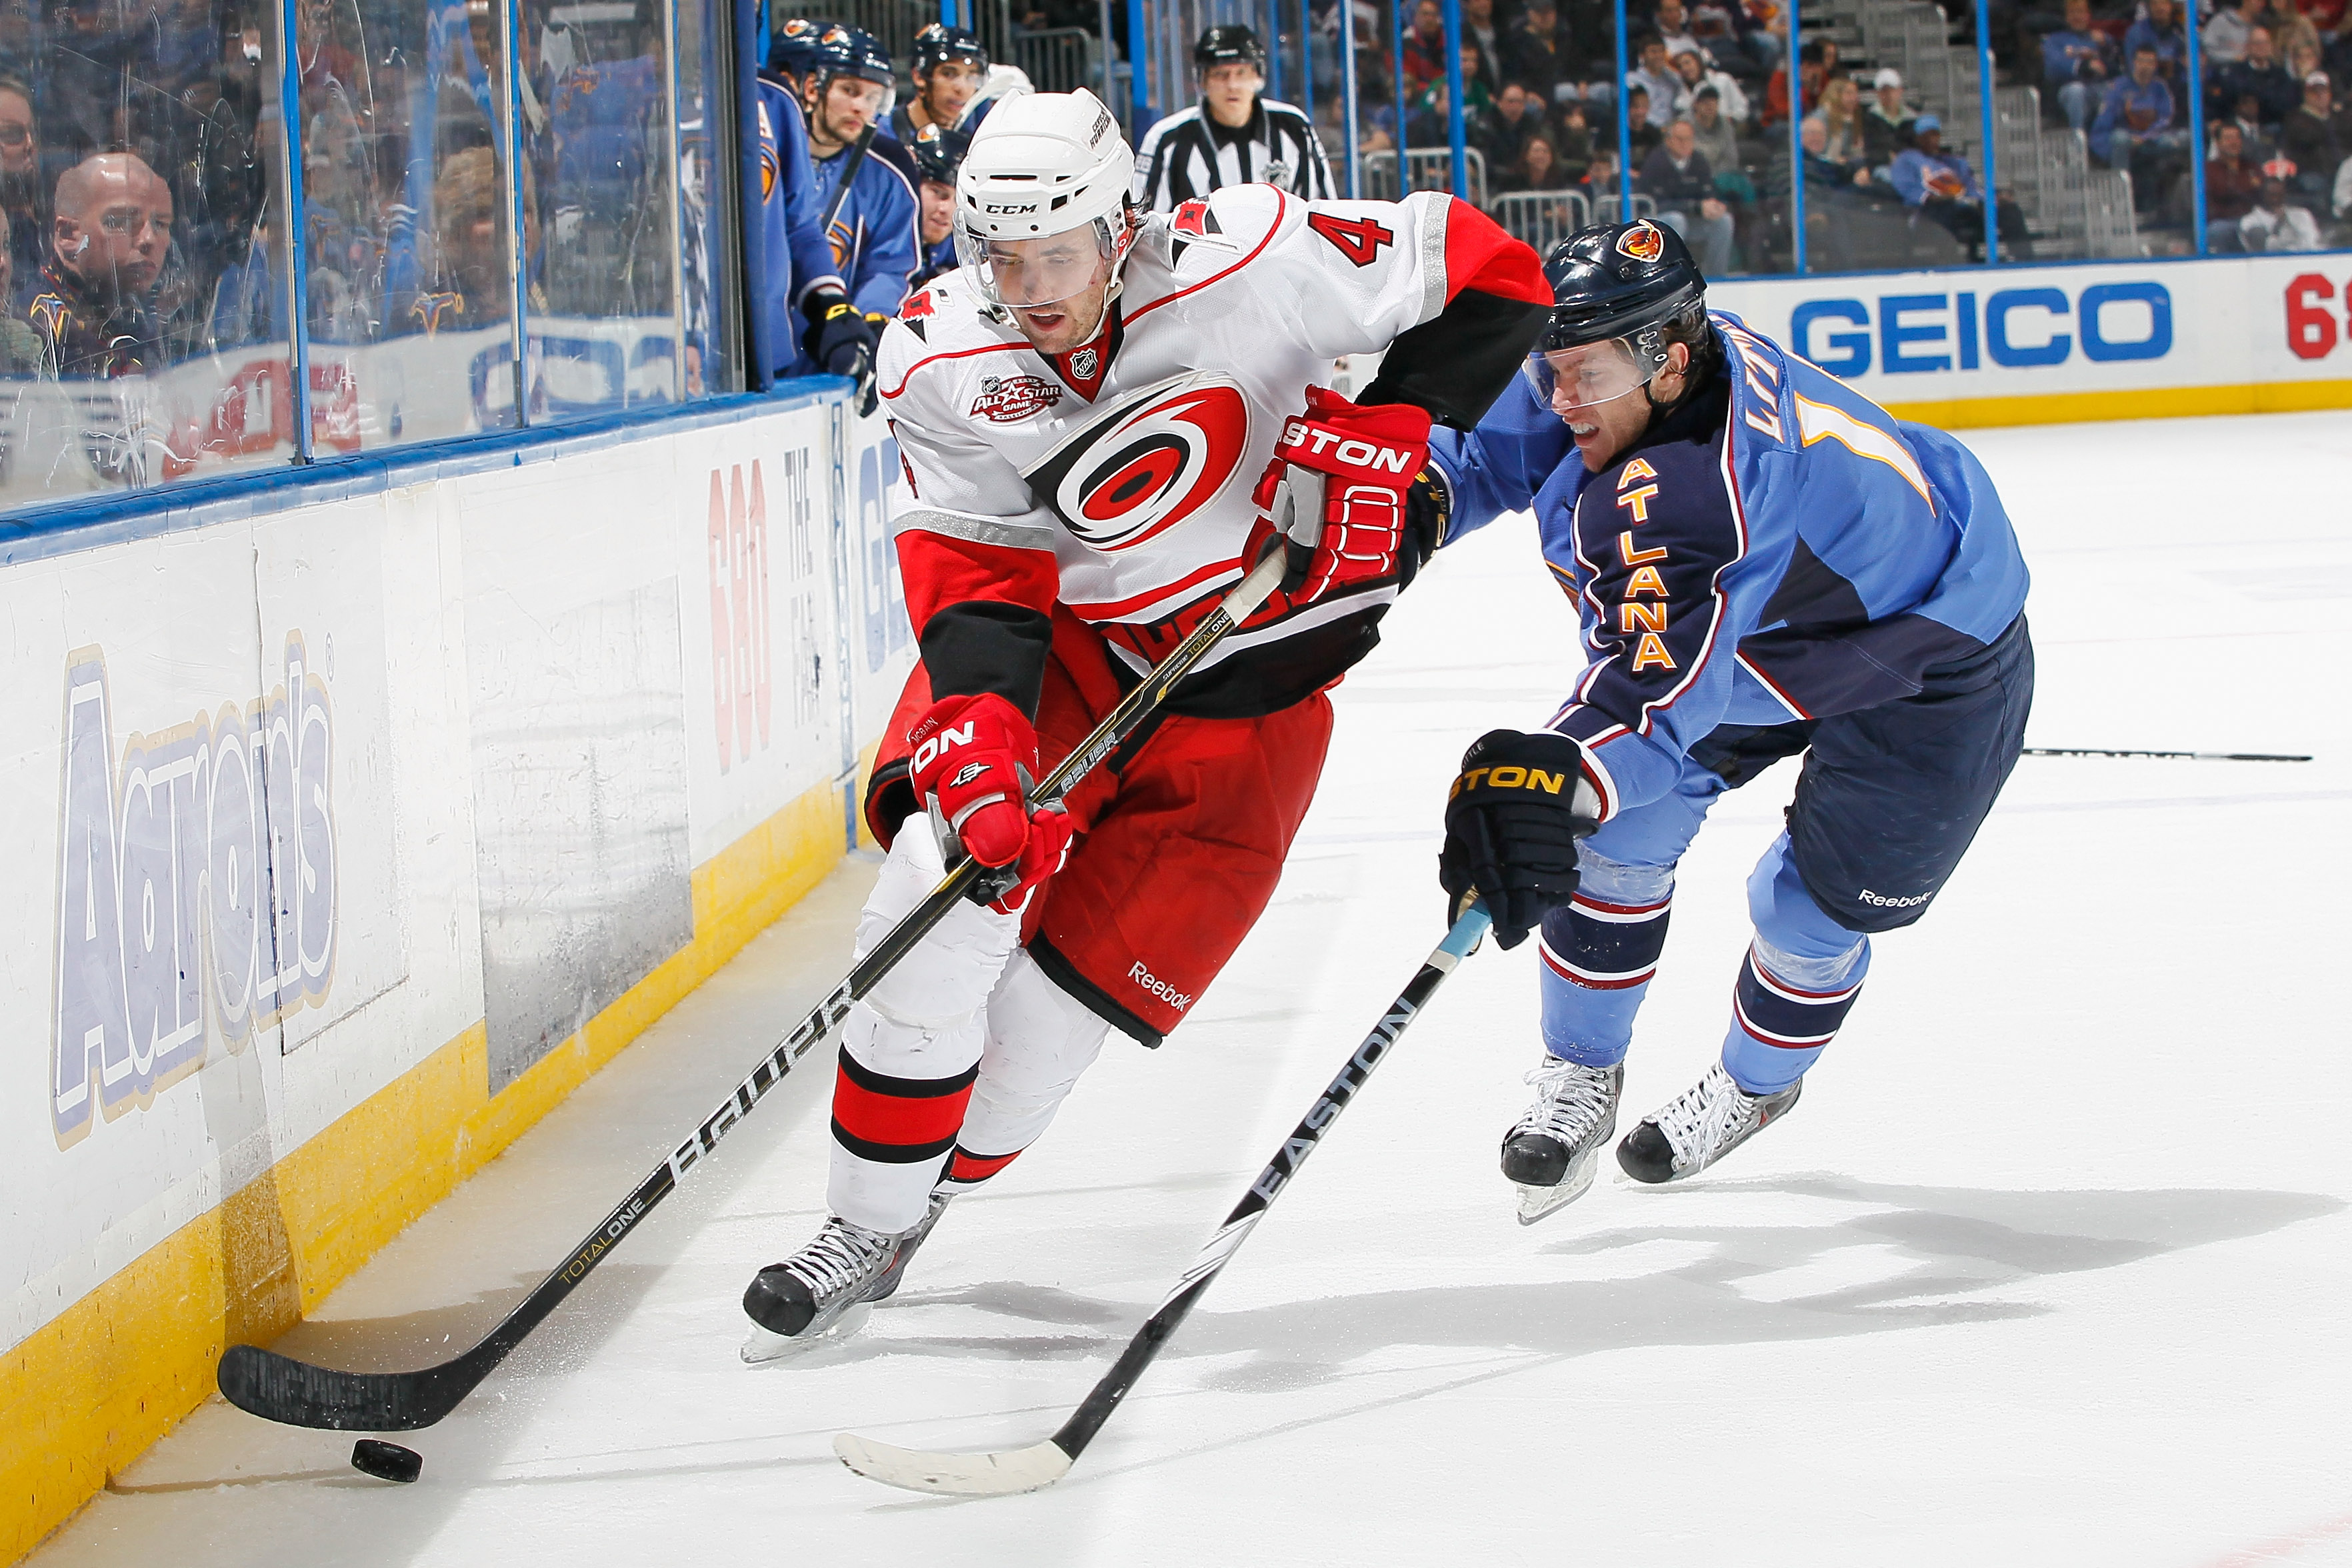 ATLANTA, GA - DECEMBER 16:  Jamie McBain #4 of the Carolina Hurricanes pushes the puck up the ice against Bryan Little #10 of the Atlanta Thrashers at Philips Arena on December 16, 2010 in Atlanta, Georgia.  (Photo by Kevin C. Cox/Getty Images)